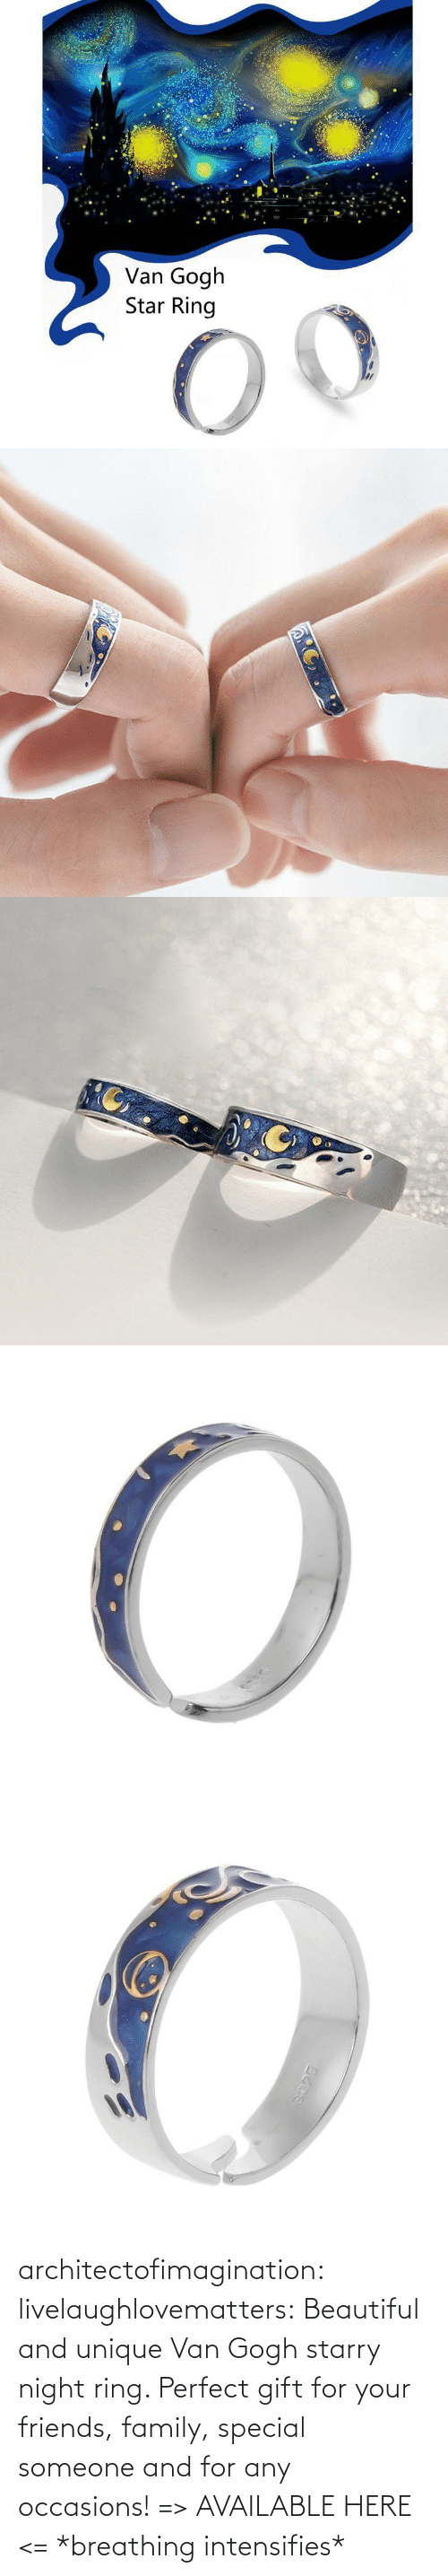 sky: architectofimagination:  livelaughlovematters: Beautiful and unique Van Gogh starry night ring. Perfect gift for your friends, family, special someone and for any occasions! => AVAILABLE HERE <=    *breathing intensifies*